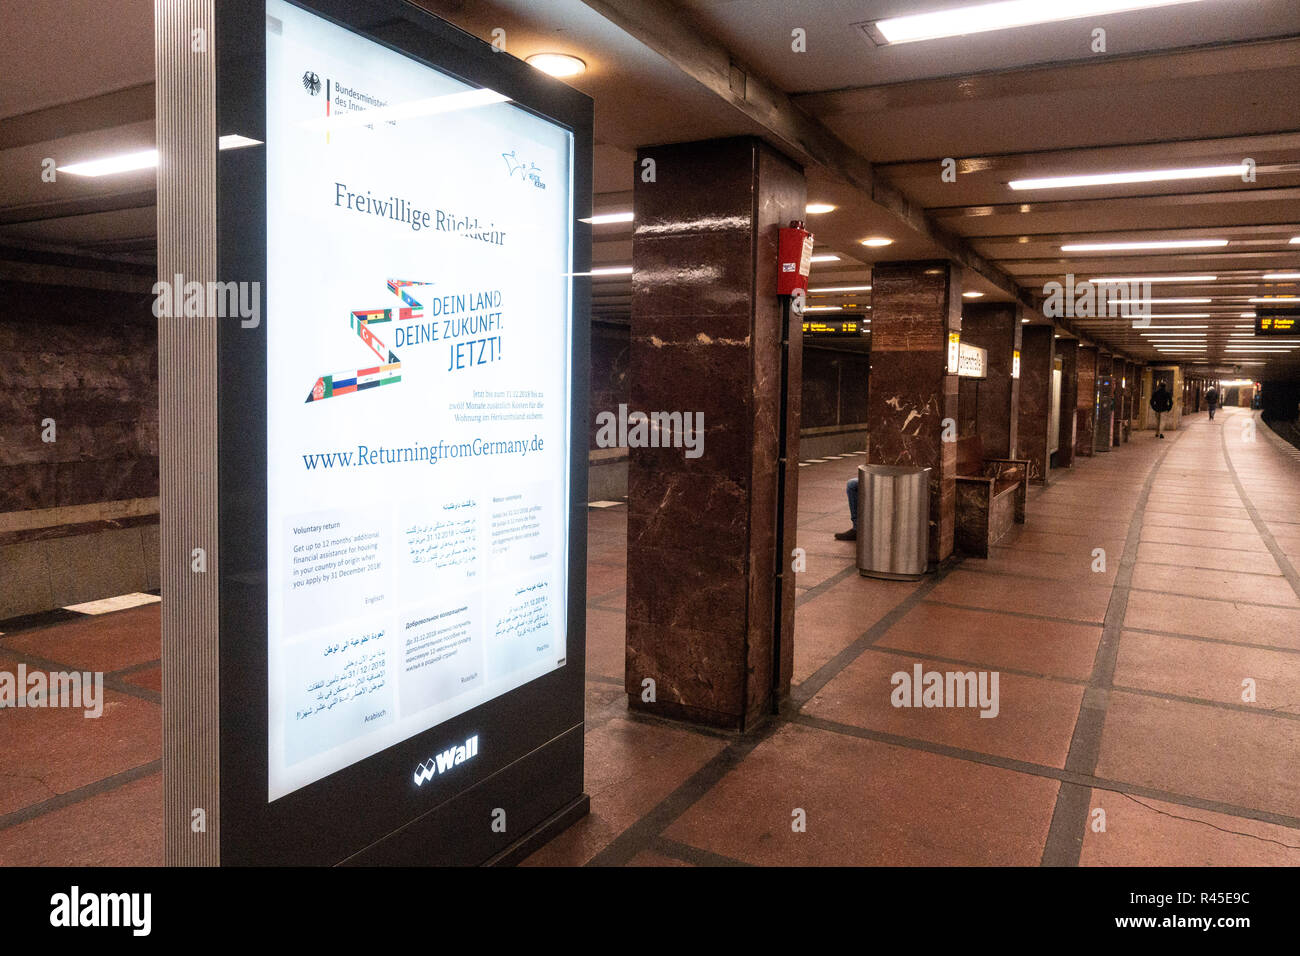 Berlin, Berlin, Germany. 24th Nov, 2018. A campaign poster by the German Ministry of the Interior, promotes the voluntary return of refugees to their home countries is seen at a metro underground station in Berlin, Germany, November 24, 2018. The Federal Office for Migration and Refugees (Bundesamt für Migration und Flüchtlinge or BAMF), initiated a campaign encouraging refugees to return to their source countries, through several advertising mediums, one of which as street posters. Credit: Omer Messinger/ZUMA Wire/Alamy Live News - Stock Image